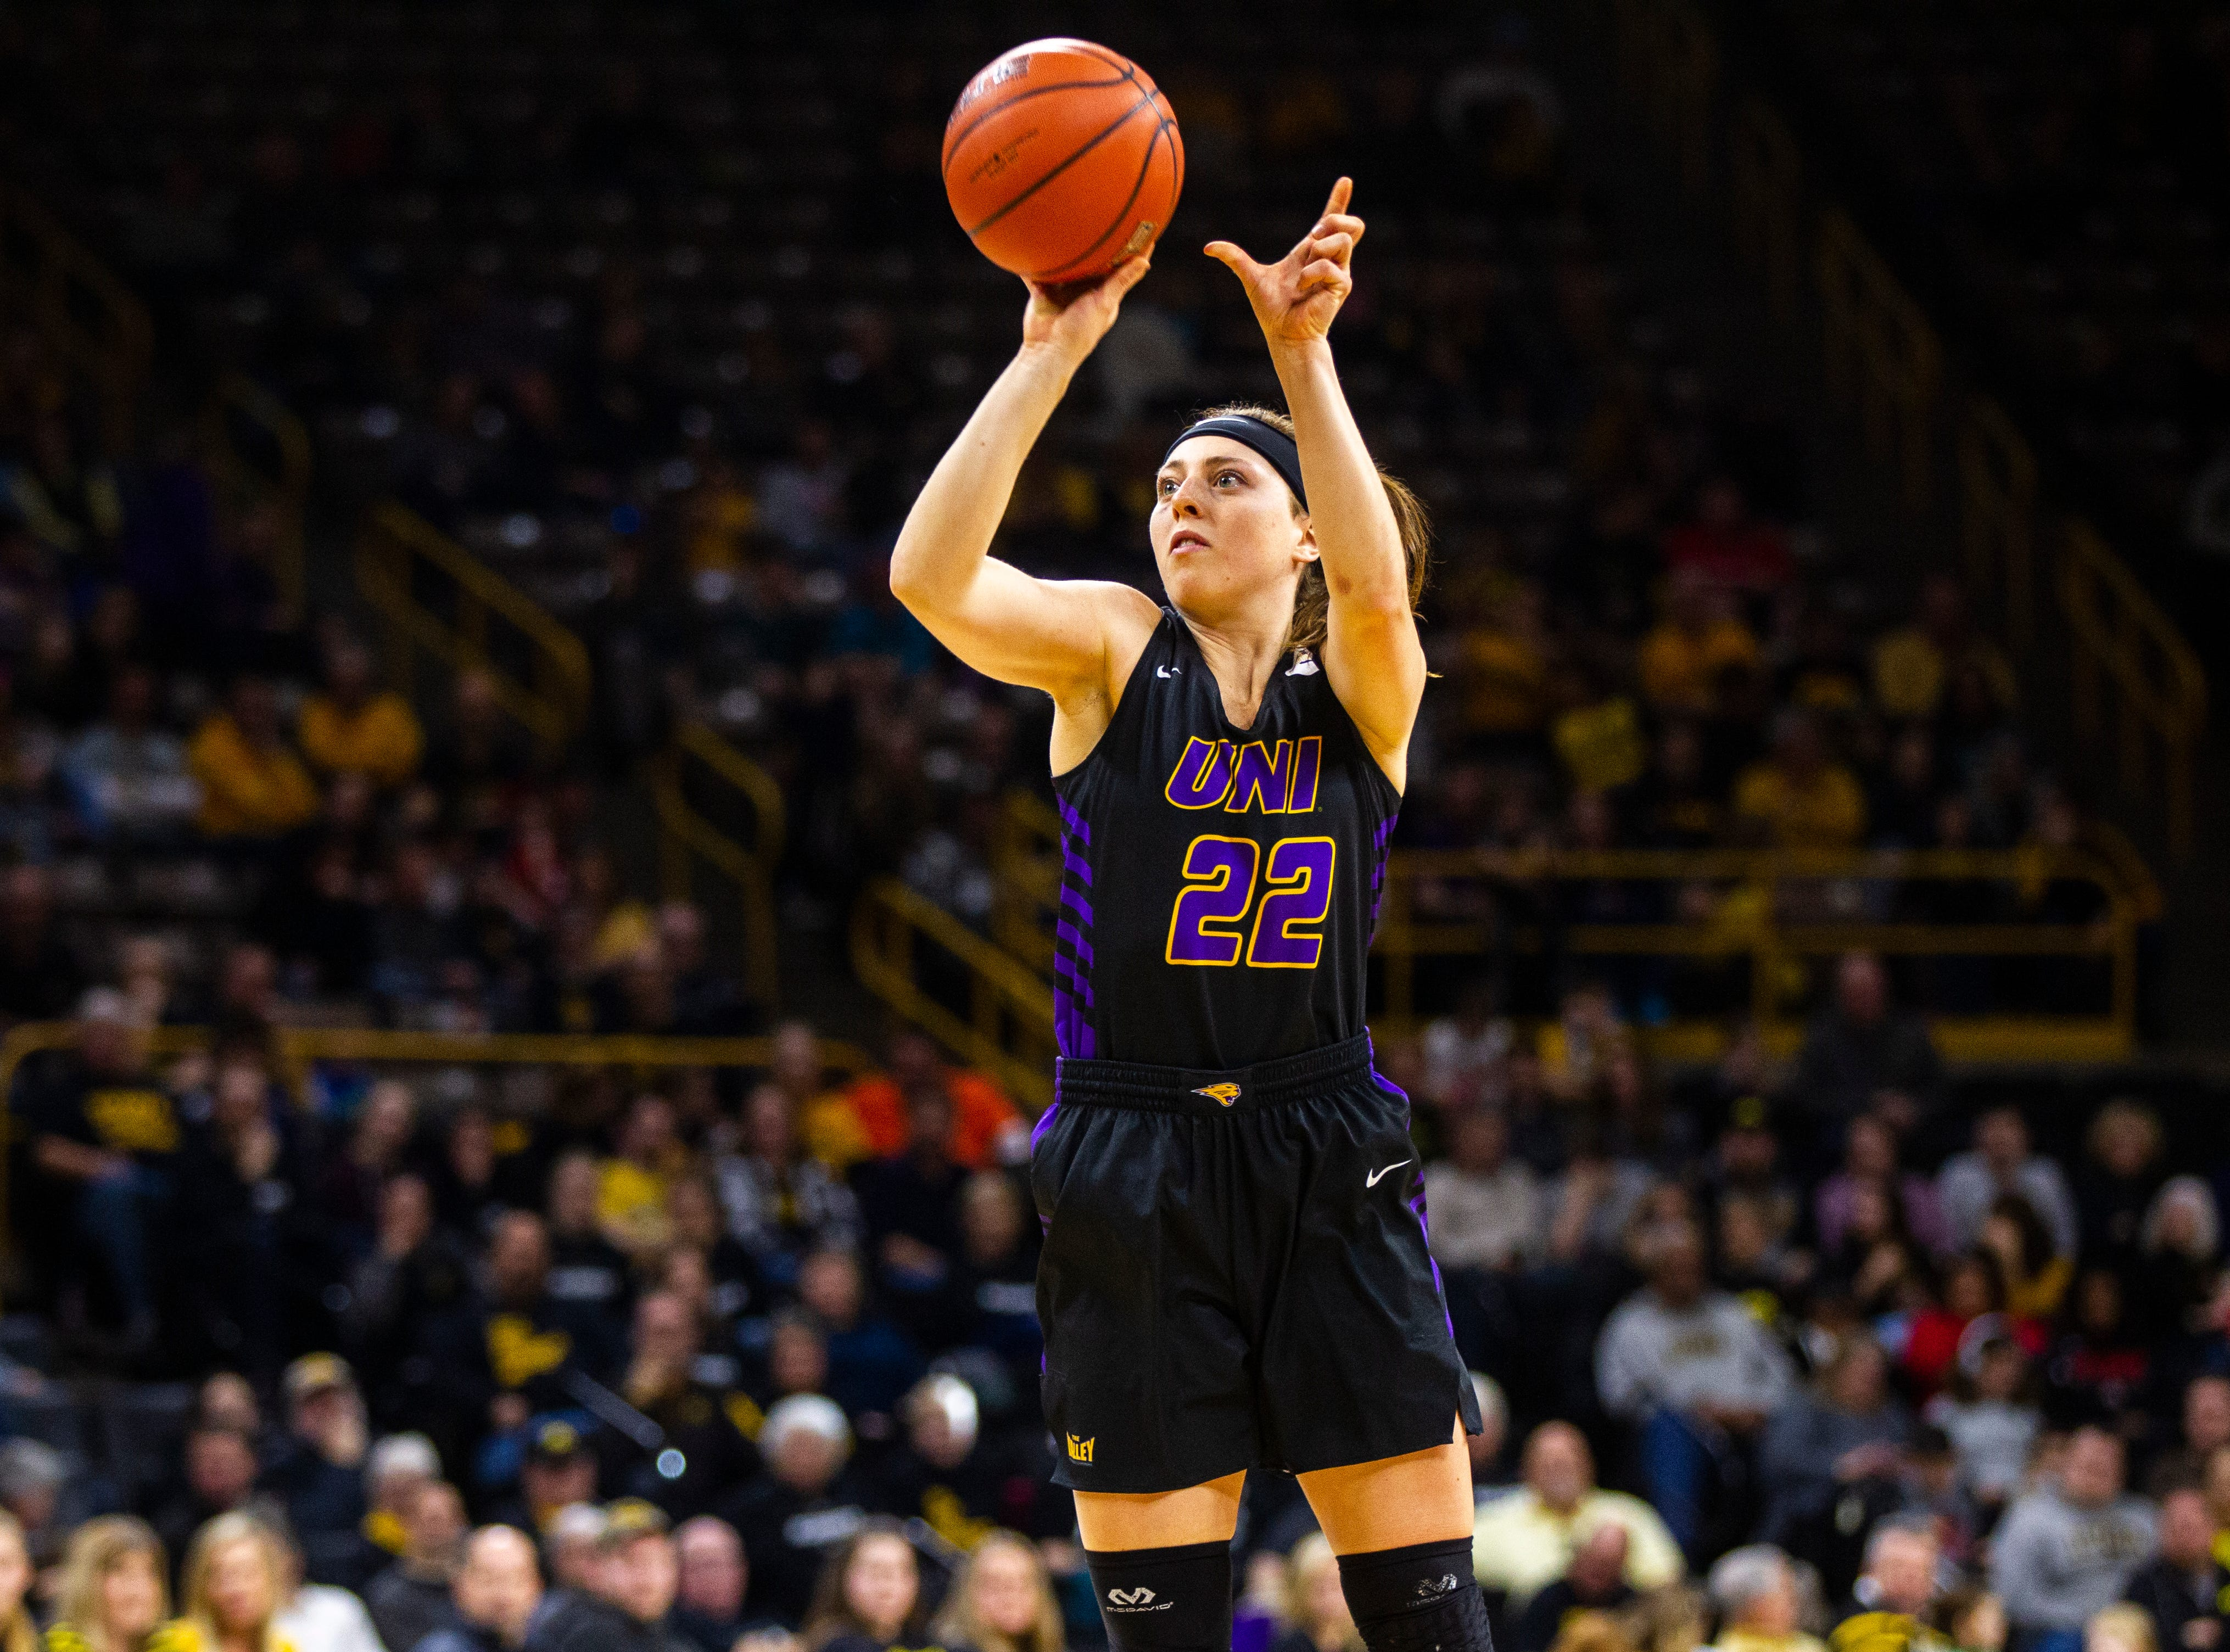 Northern Iowa guard Rose Simon-Ressler (22) shoots a 3-point basket during a NCAA women's basketball game on Sunday, Dec. 16, 2018, at Carver-Hawkeye Arena in Iowa City.